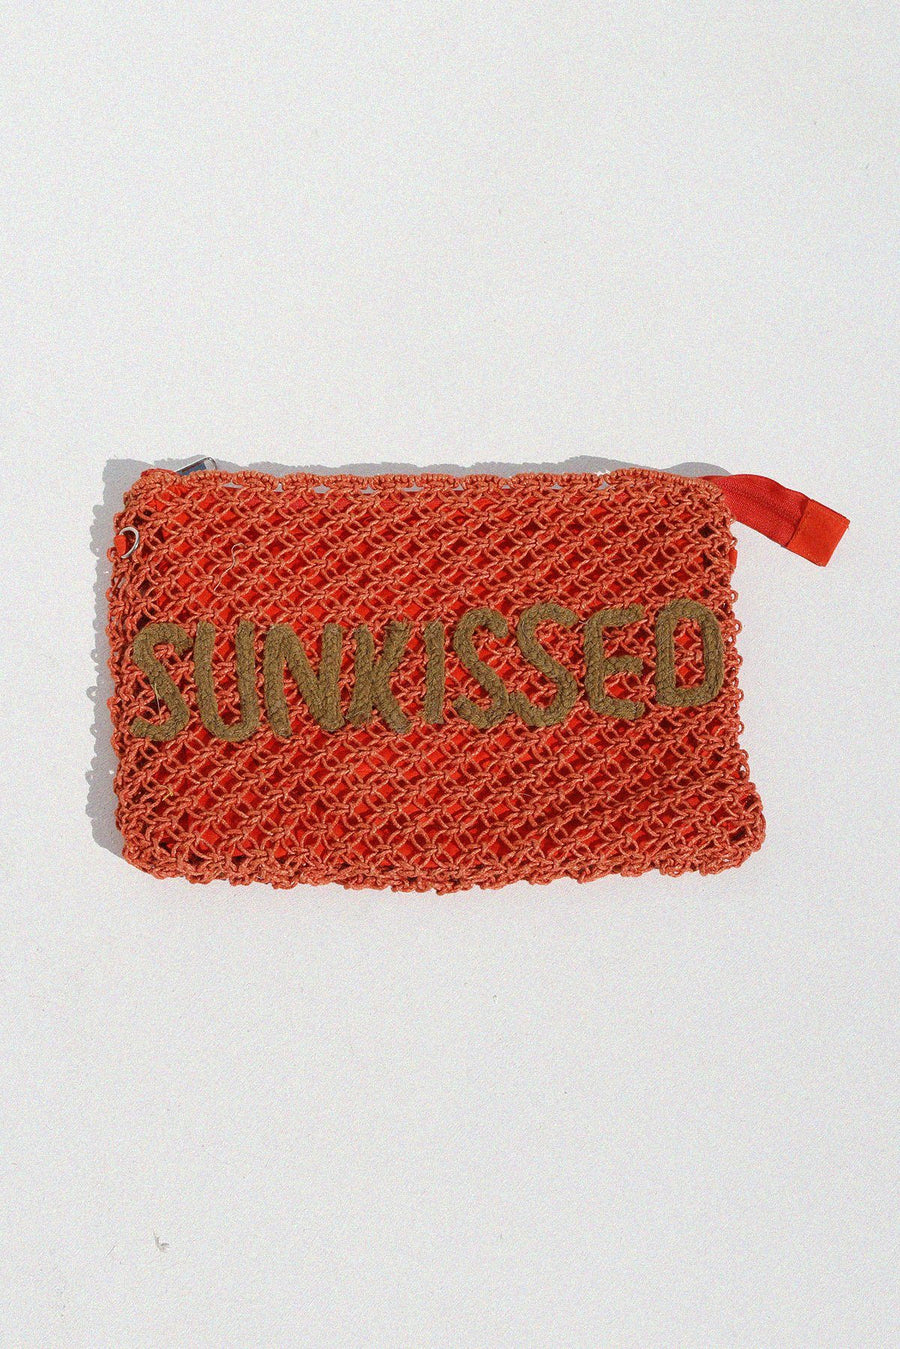 Sunkissed Jute Clutch Purse